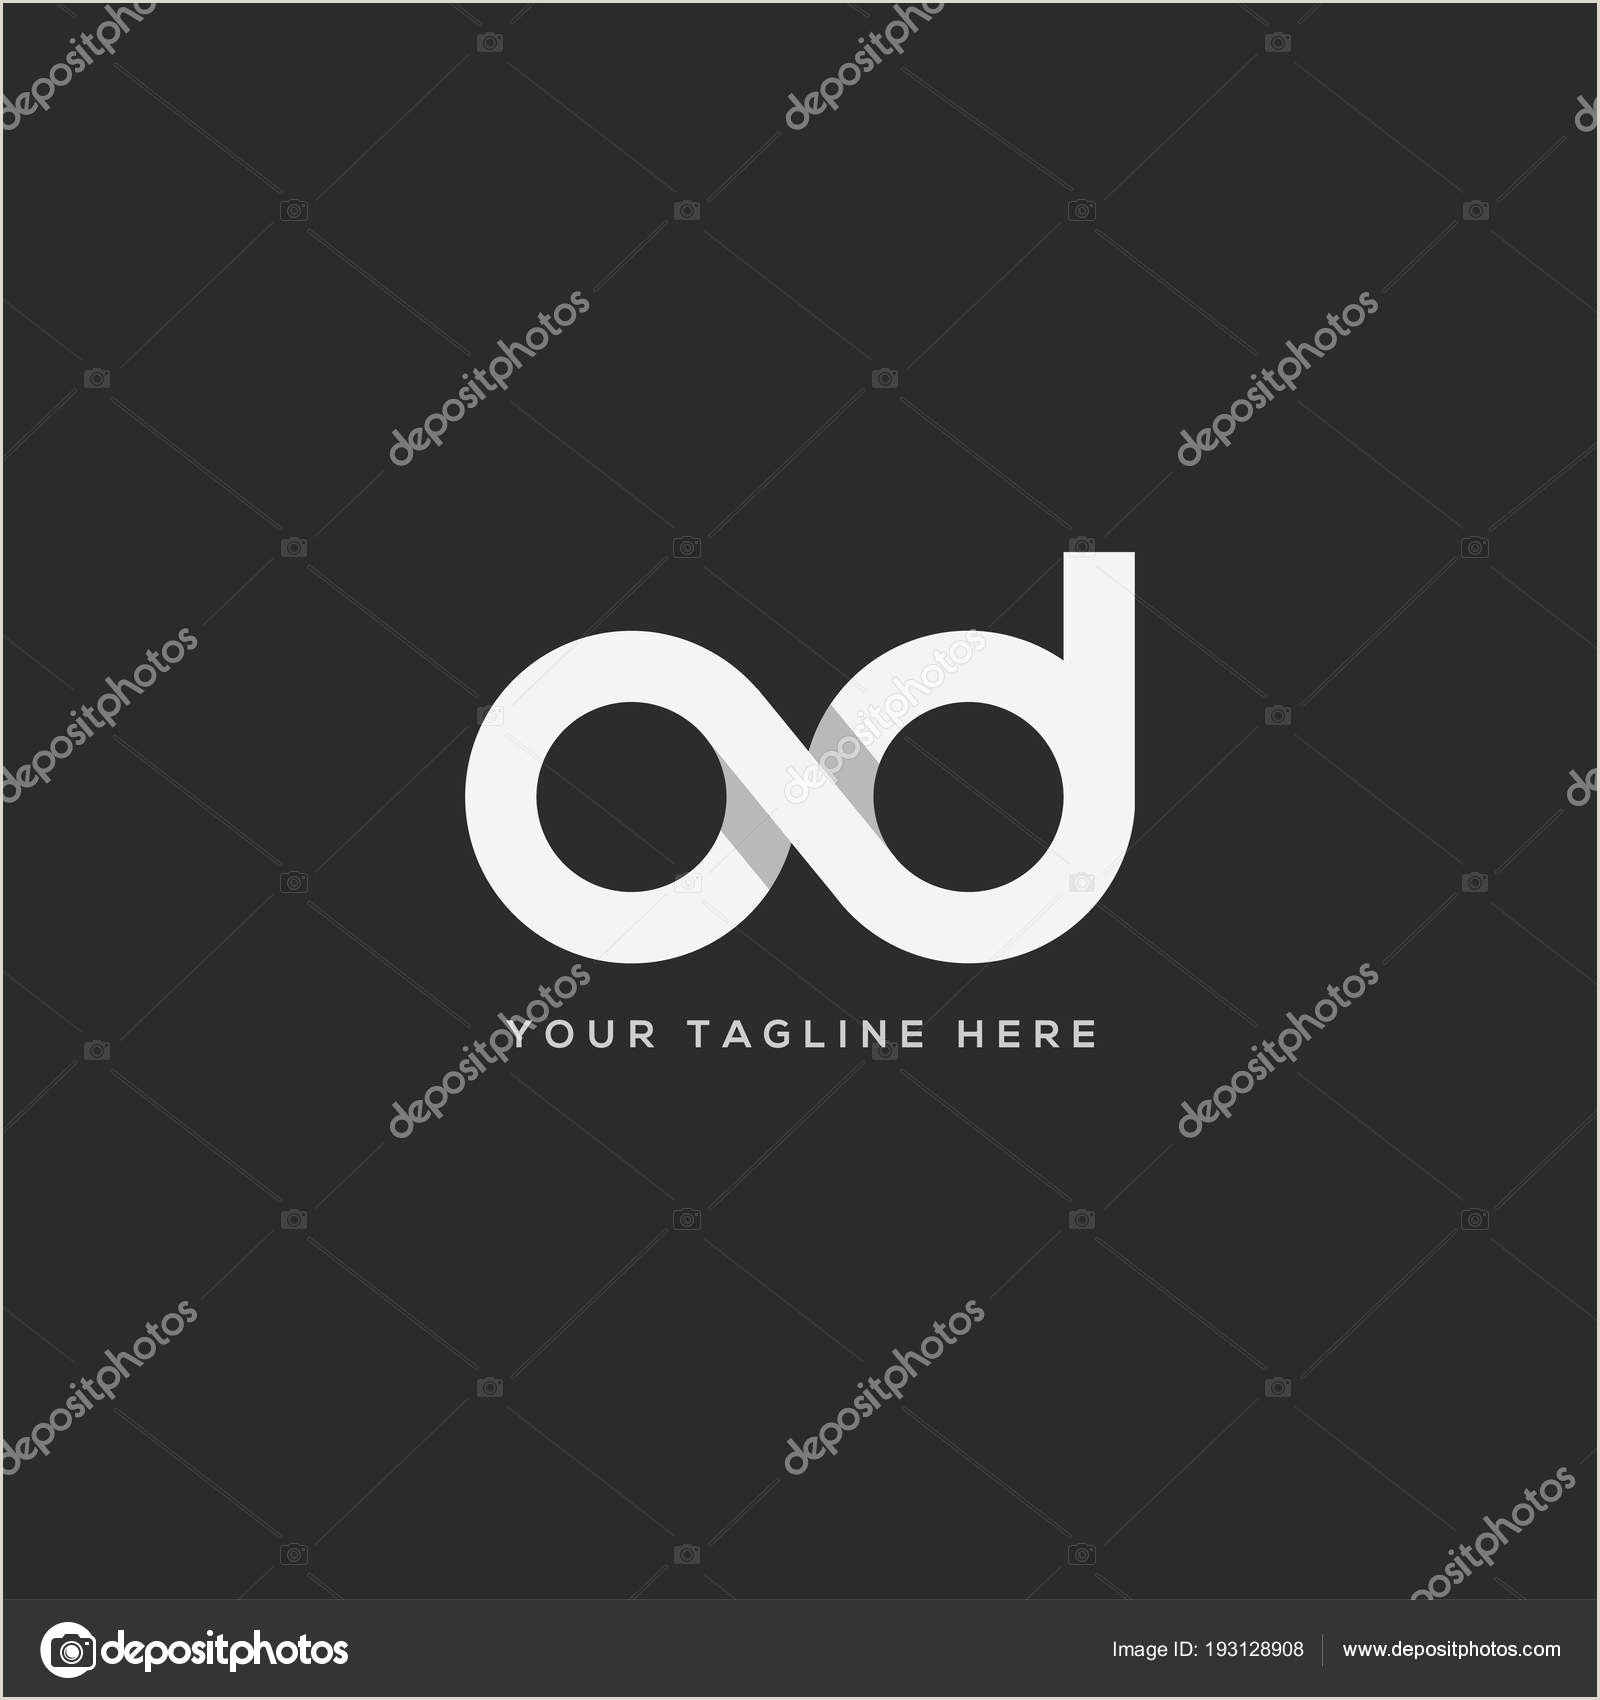 How Big Are Buisness Cards Letters Logo Template Buisness Card — Stock Vector